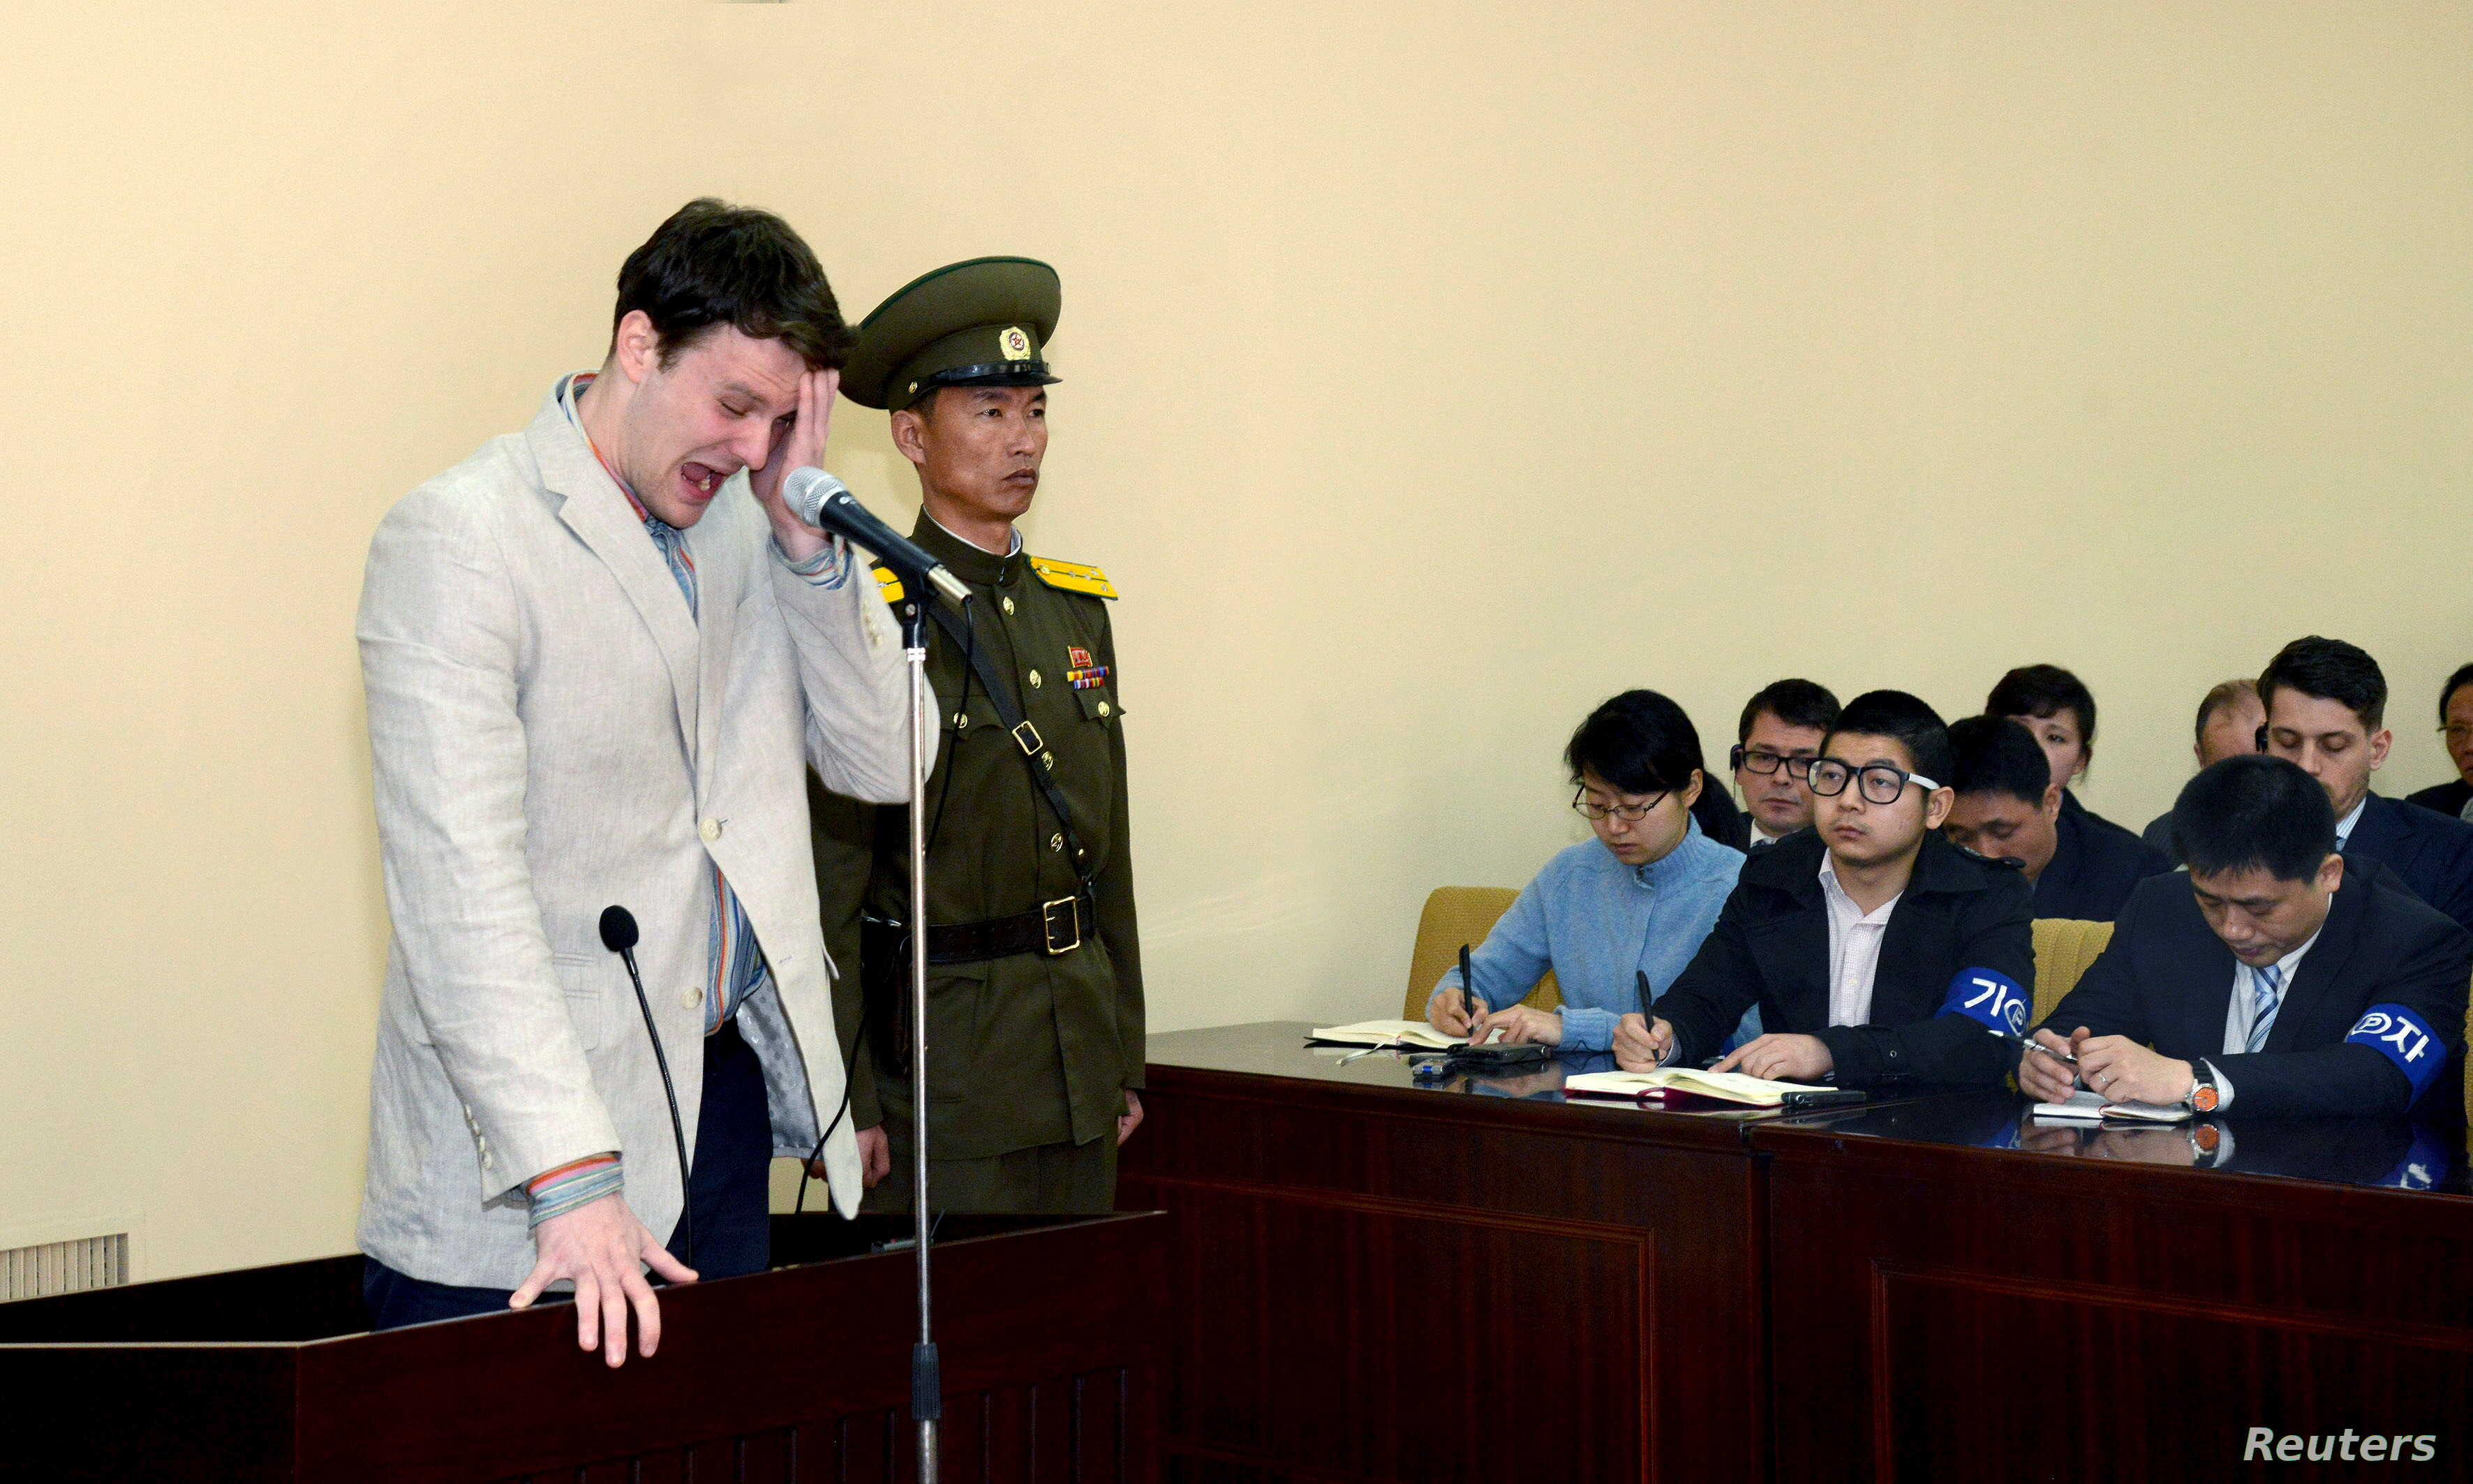 U.S. student Otto Warmbier cries at court in an undisclosed location in North Korea, in this photo released by North Korea's Korean Central News Agency (KCNA) in Pyongyang on March 16, 2016.